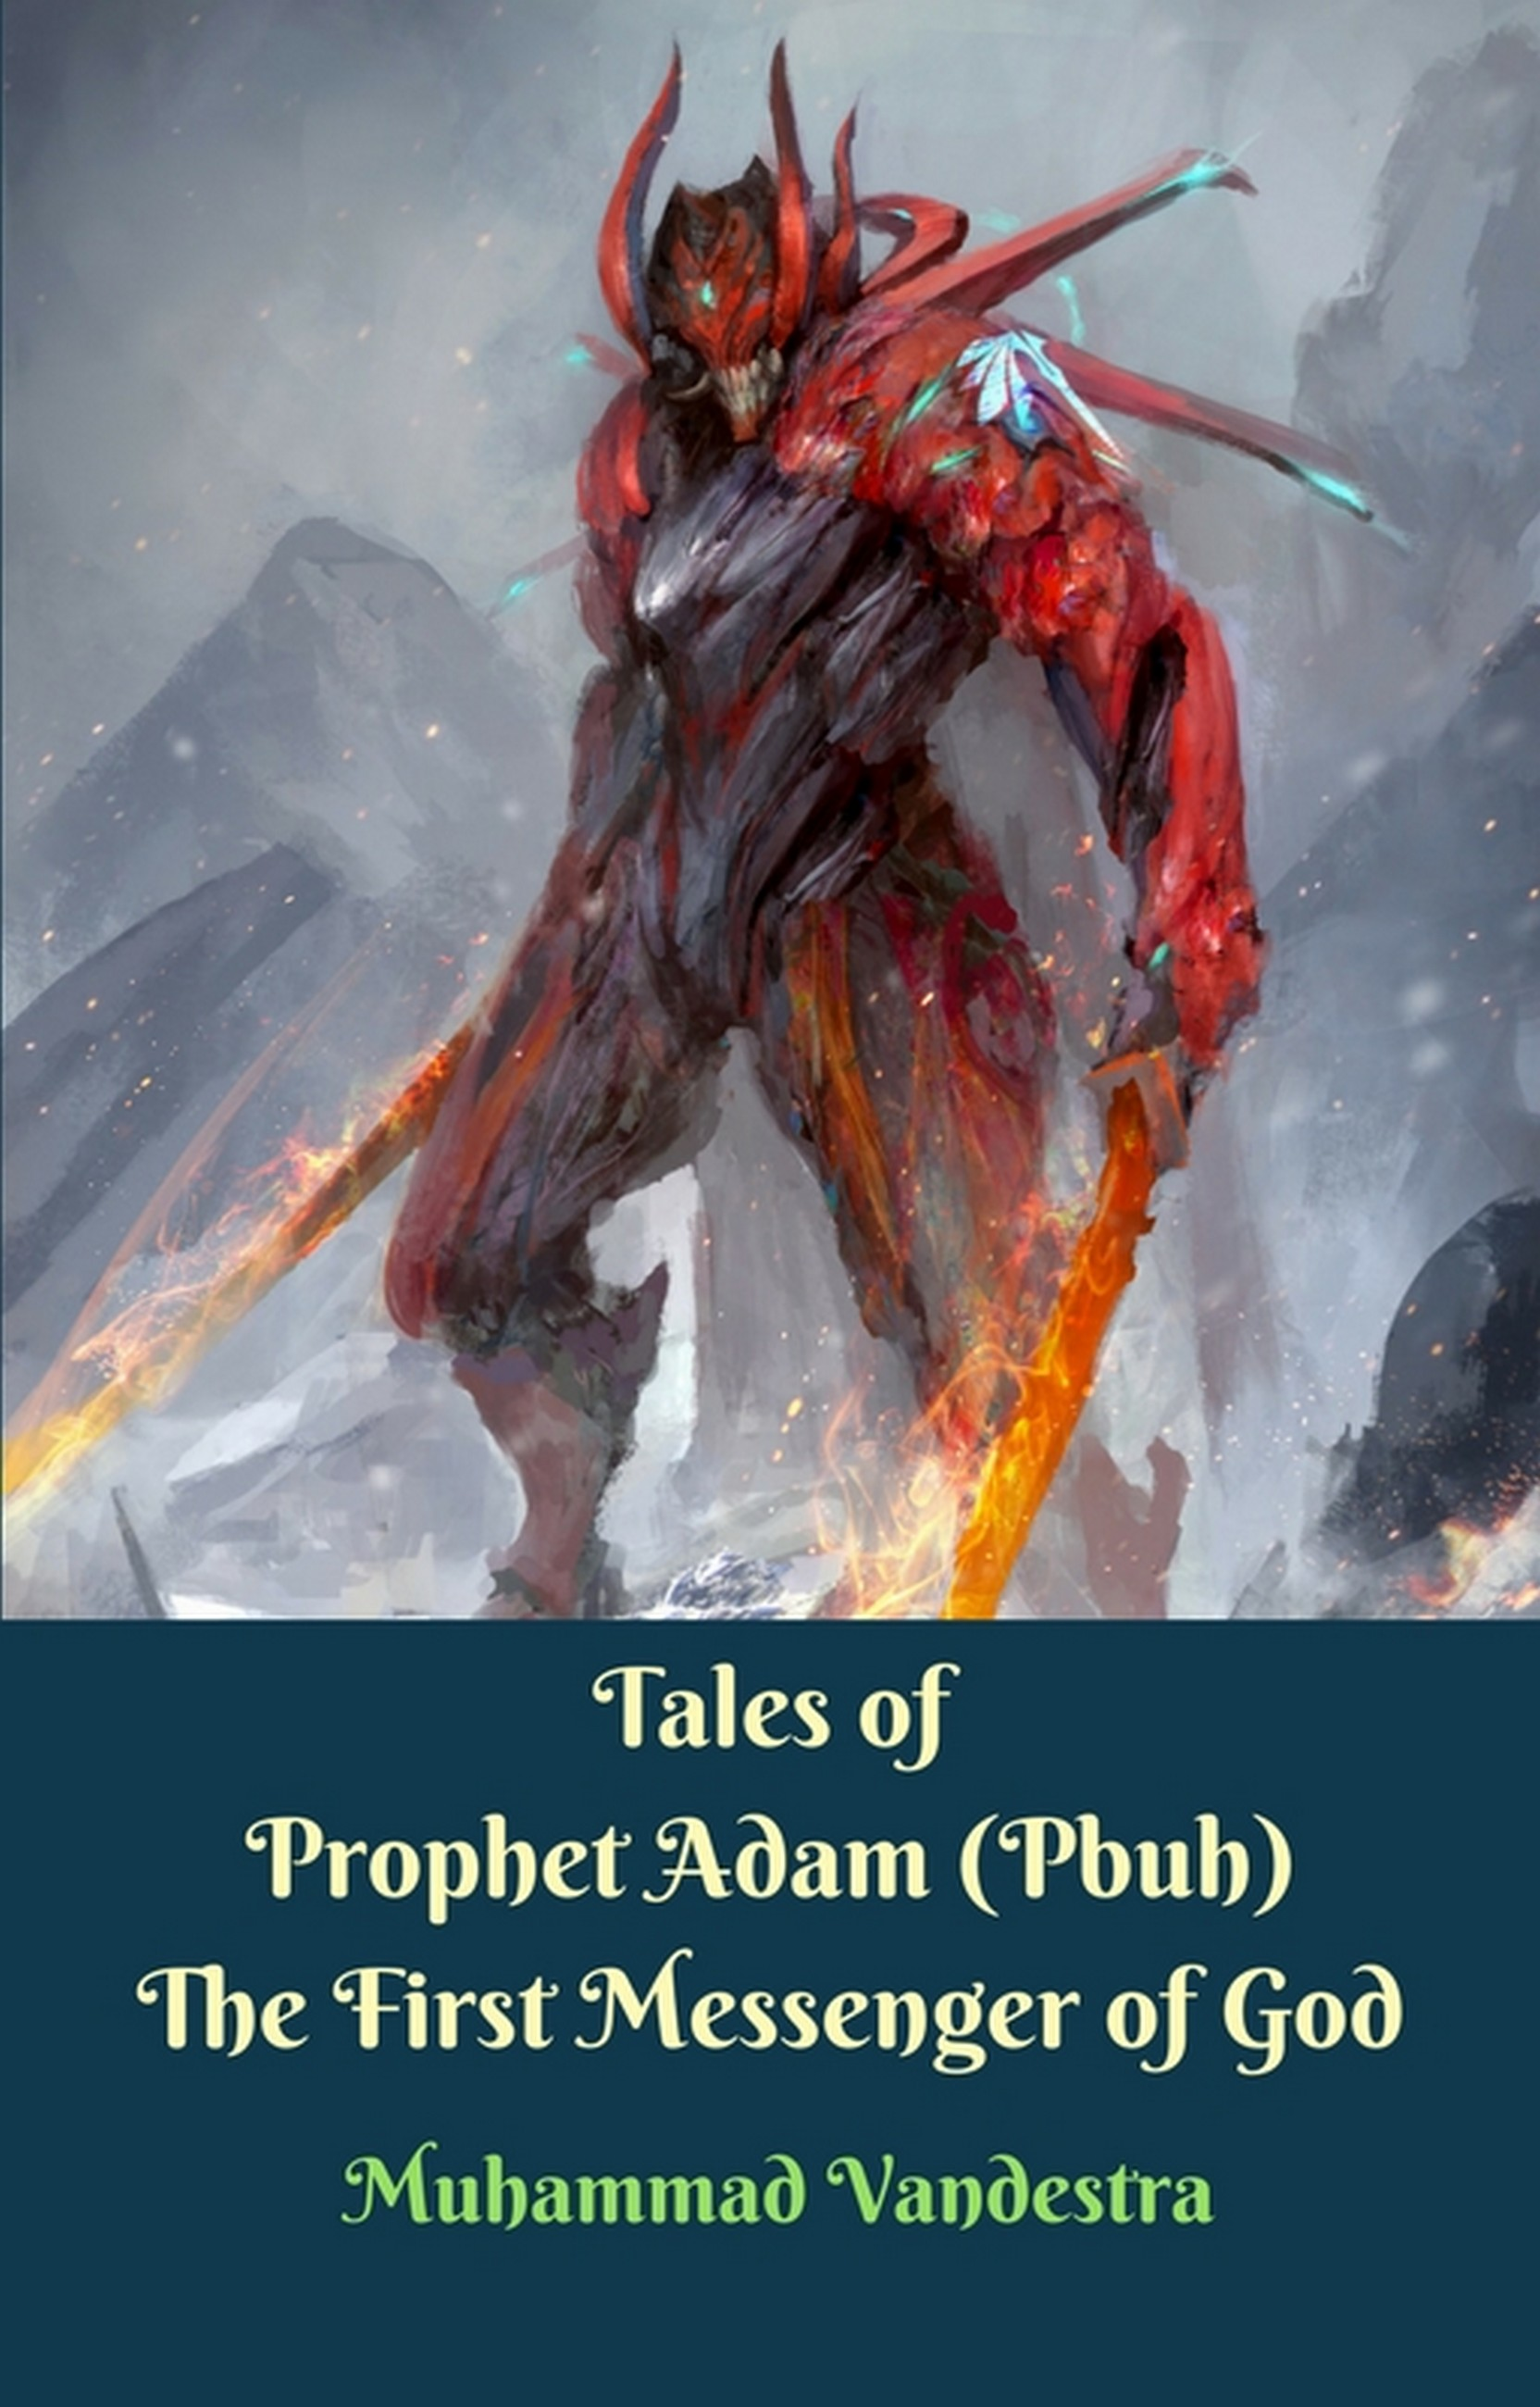 Tales of Prophet Adam (Pbuh) The First Messenger of God By Muhammad Vandestra